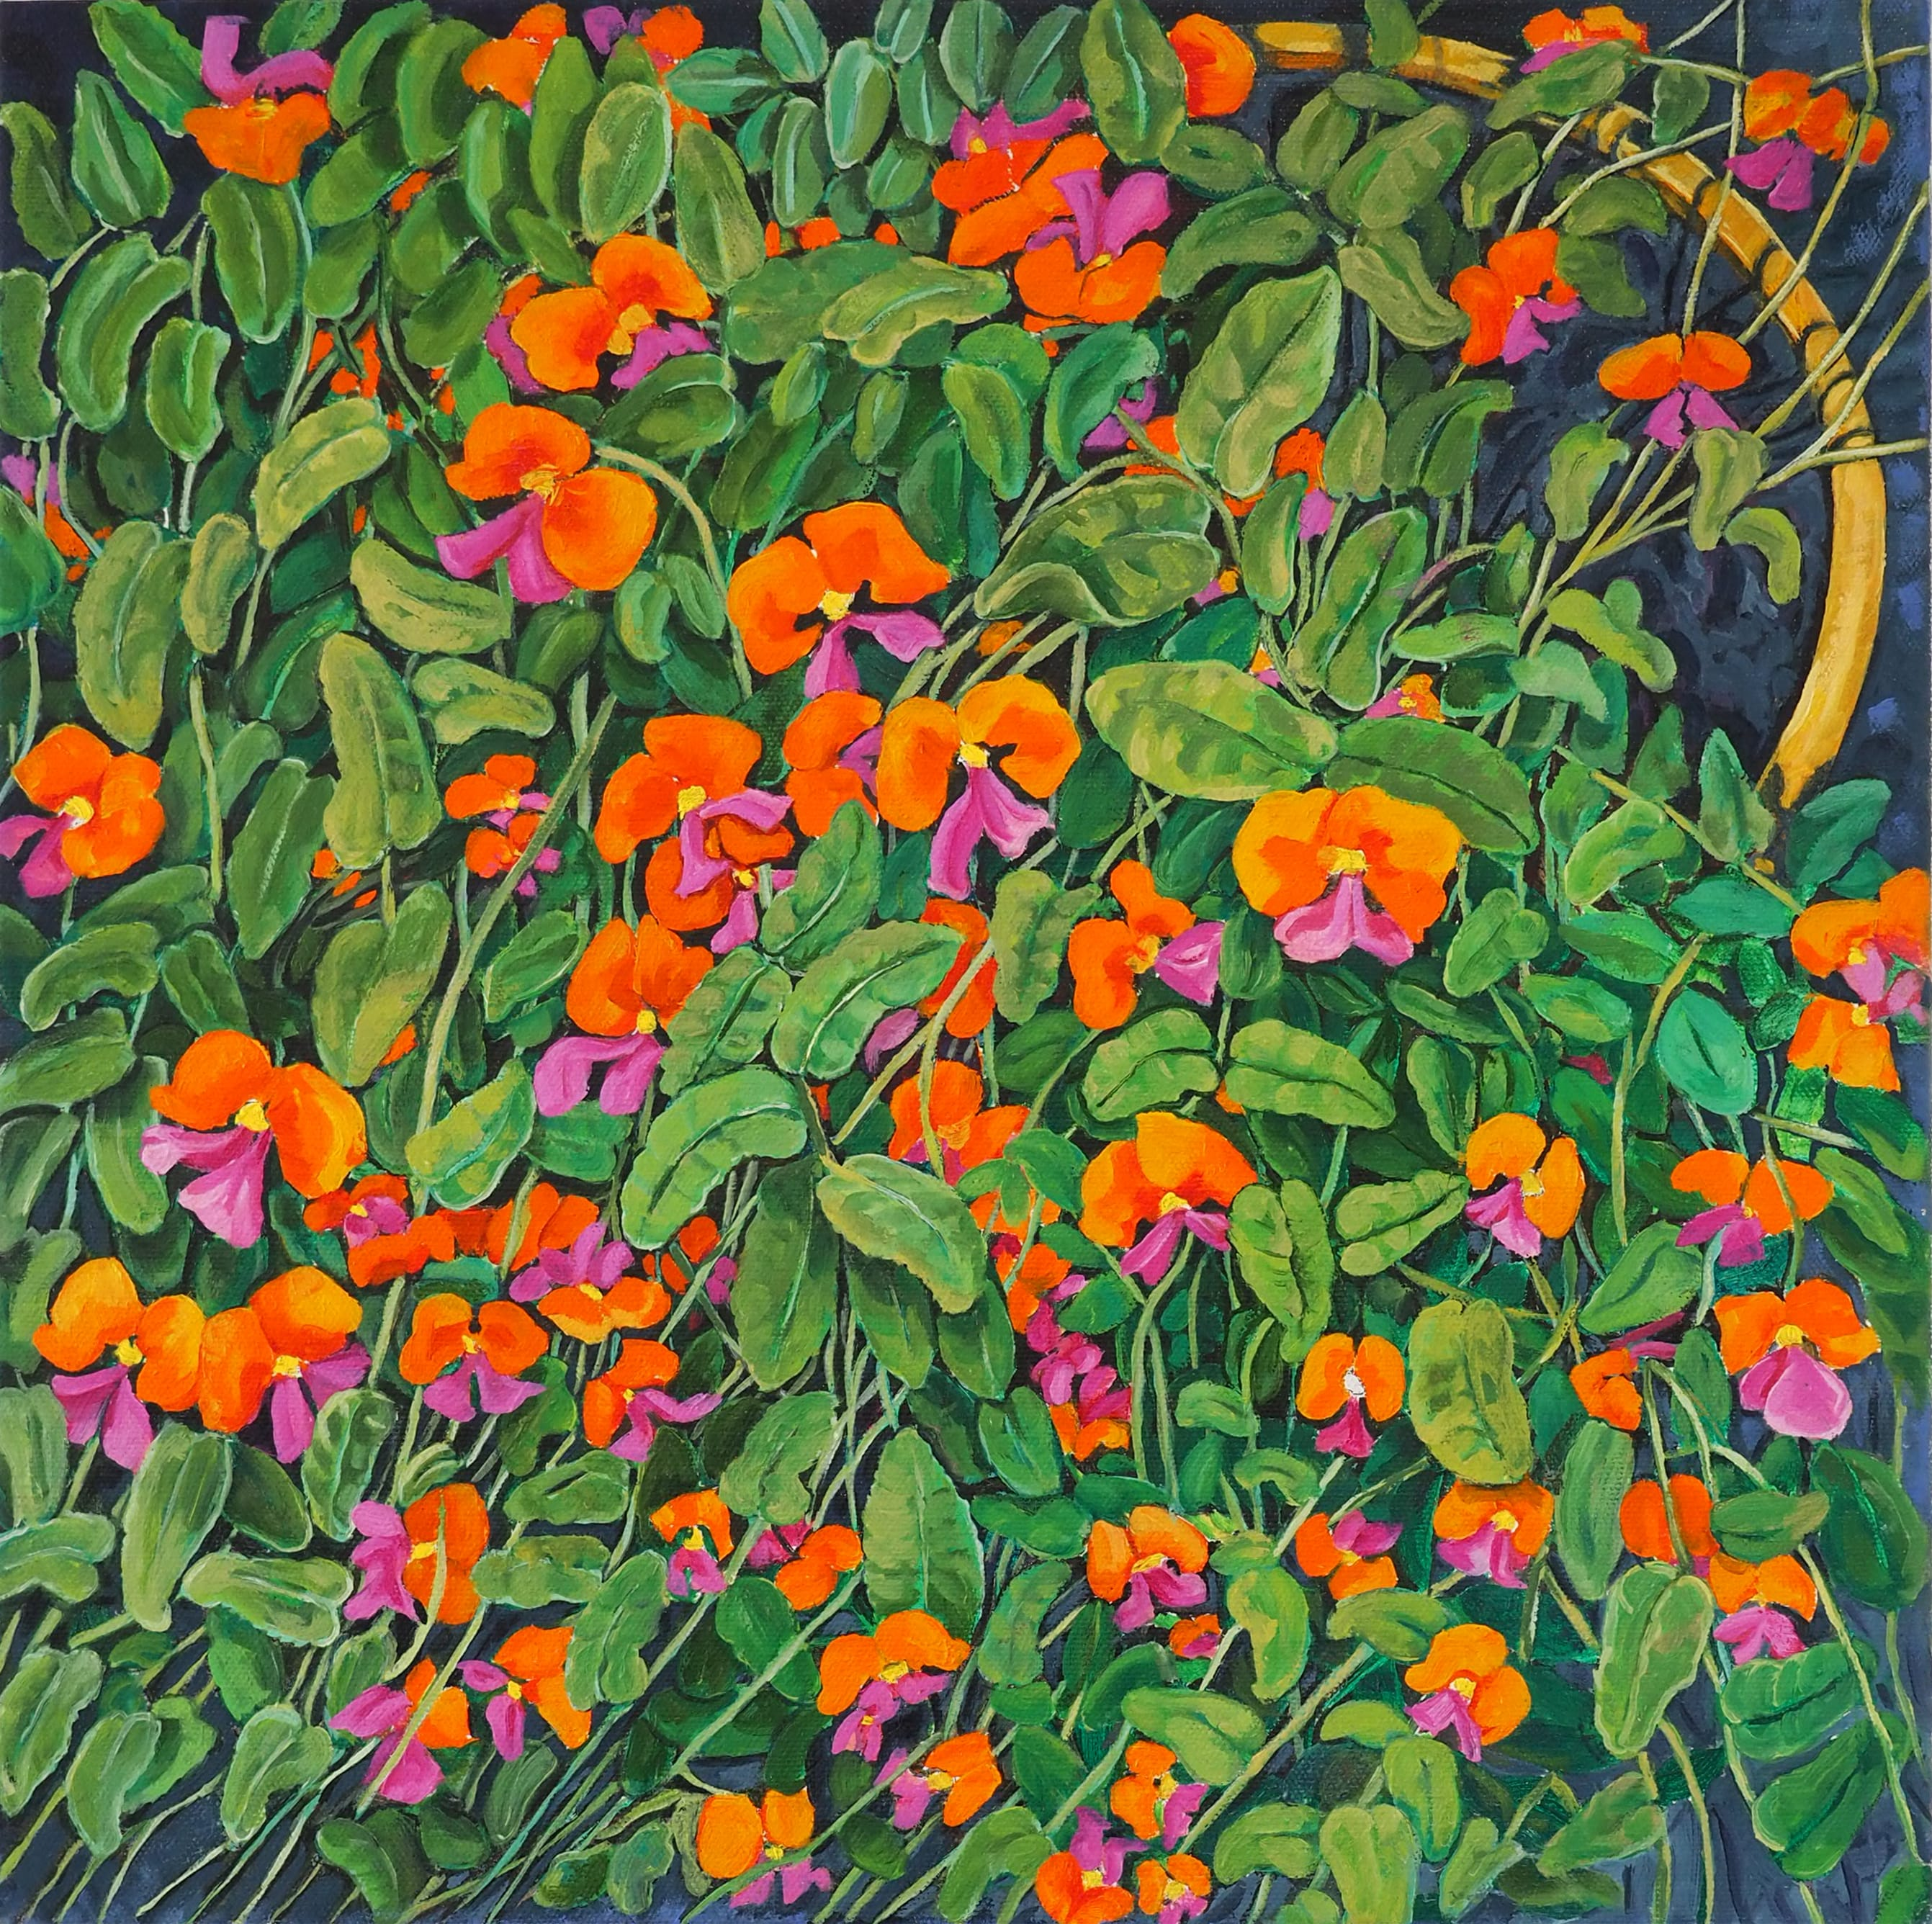 Potted Coral Pea 40x40cm oil on canvas $800